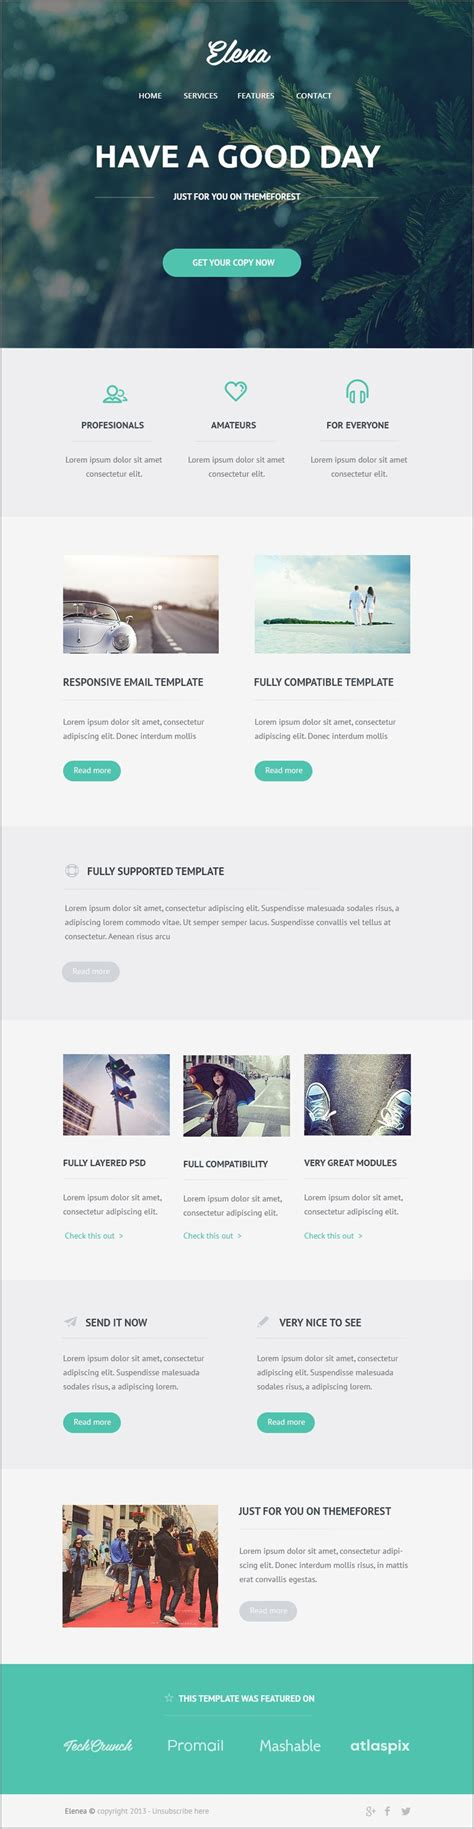 free email newsletter templates psd 187 css author